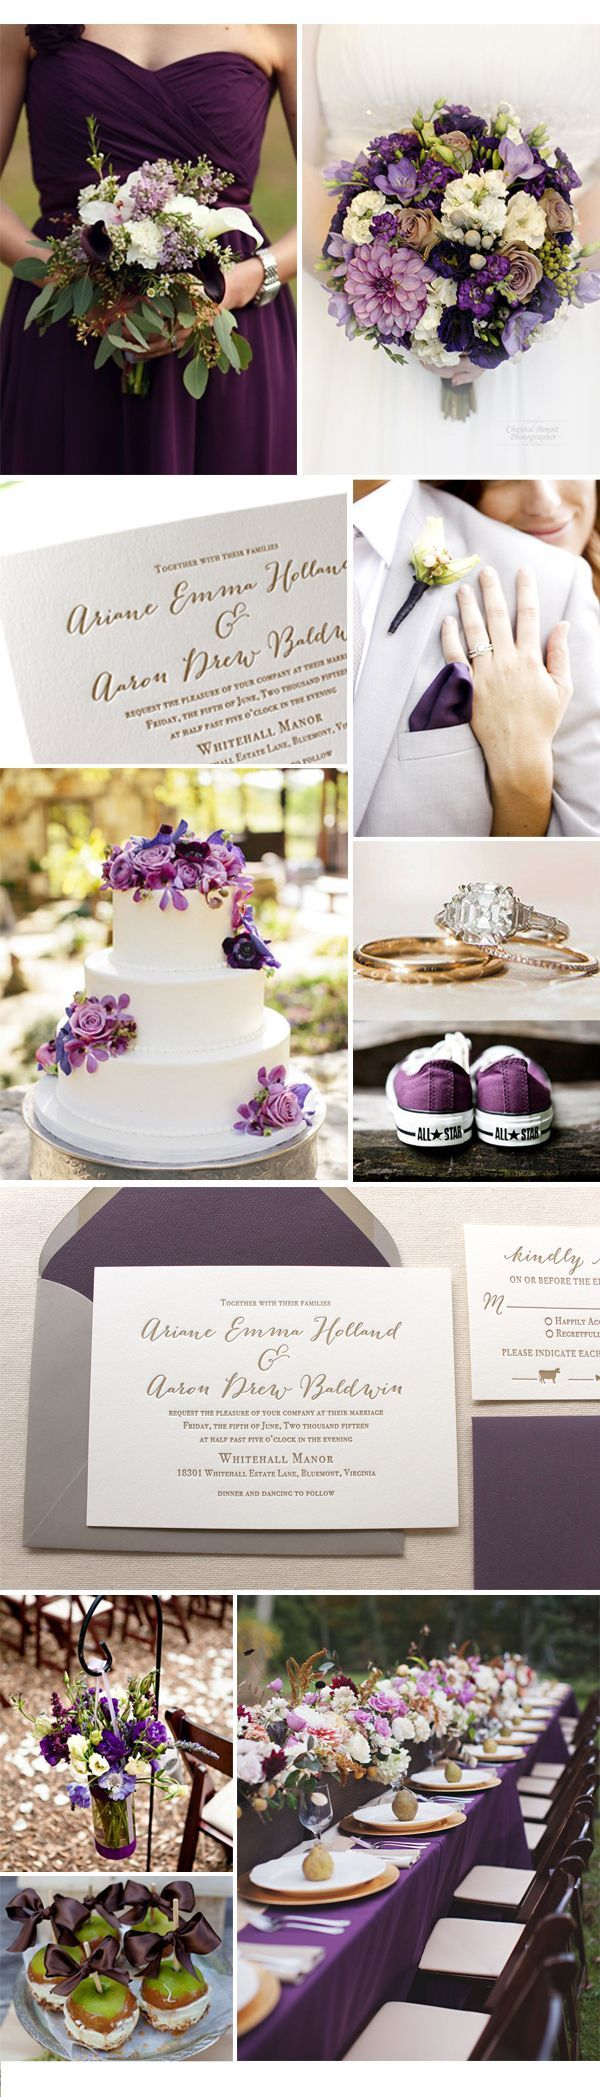 106 best Purple and Blue wedding flower theme images on Pinterest ...